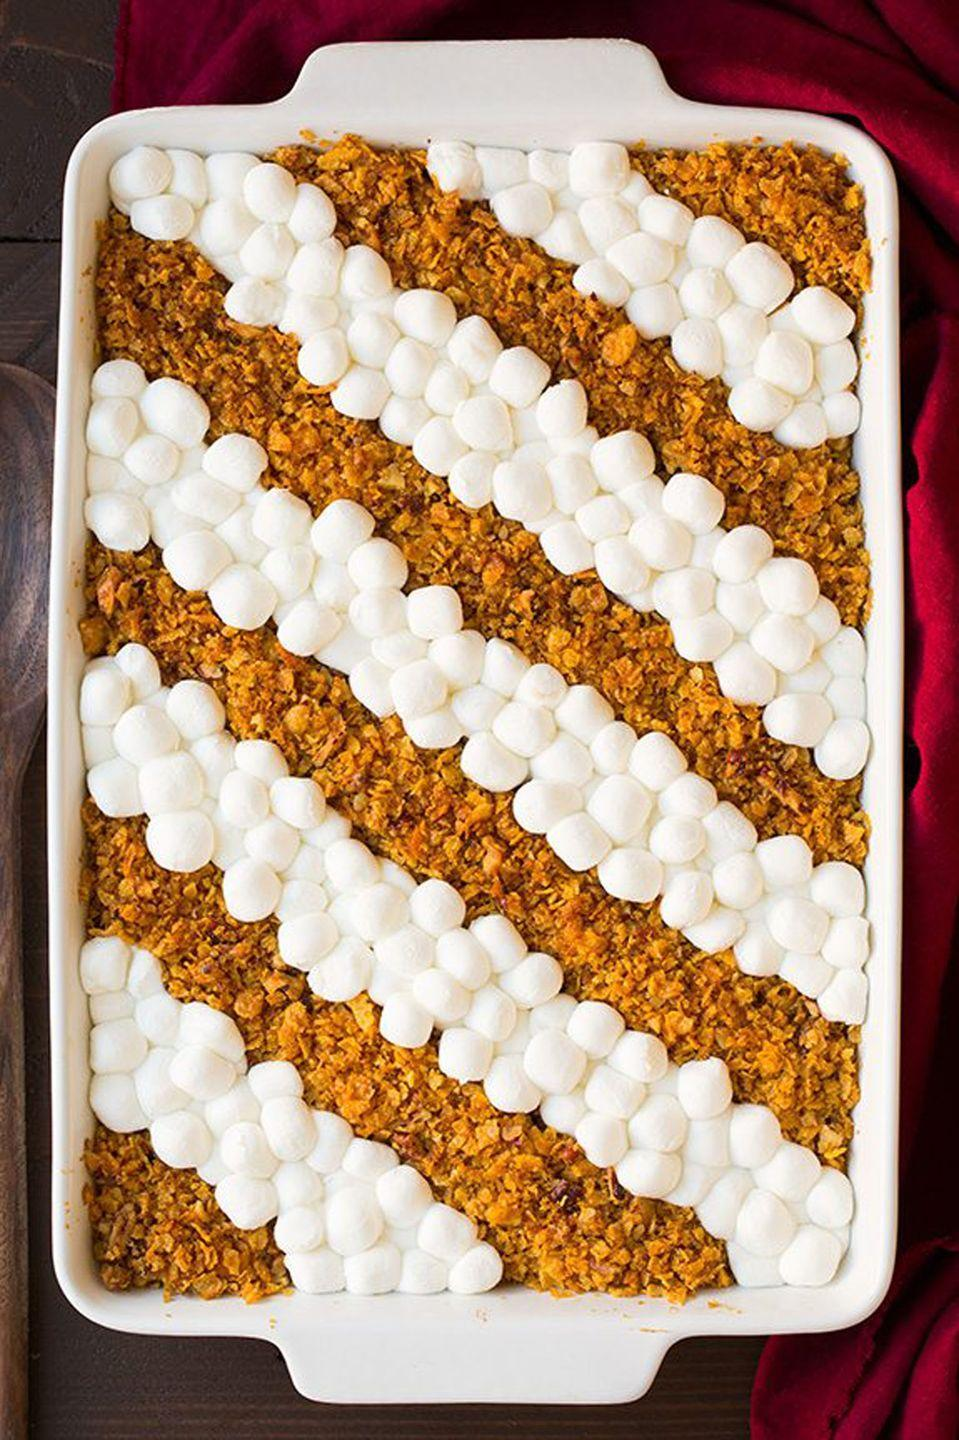 "<p>It might be a side dish, but this gorgeous <a href=""https://www.countryliving.com/food-drinks/g3787/sweet-potato-casserole/"" rel=""nofollow noopener"" target=""_blank"" data-ylk=""slk:sweet potato casserole"" class=""link rapid-noclick-resp"">sweet potato casserole</a> steals the show.</p><p><strong>Get the recipe at <a href=""https://www.cookingclassy.com/browned-butter-sweet-potato-casserole/"" rel=""nofollow noopener"" target=""_blank"" data-ylk=""slk:Cooking Classy"" class=""link rapid-noclick-resp"">Cooking Classy</a>.</strong> </p>"